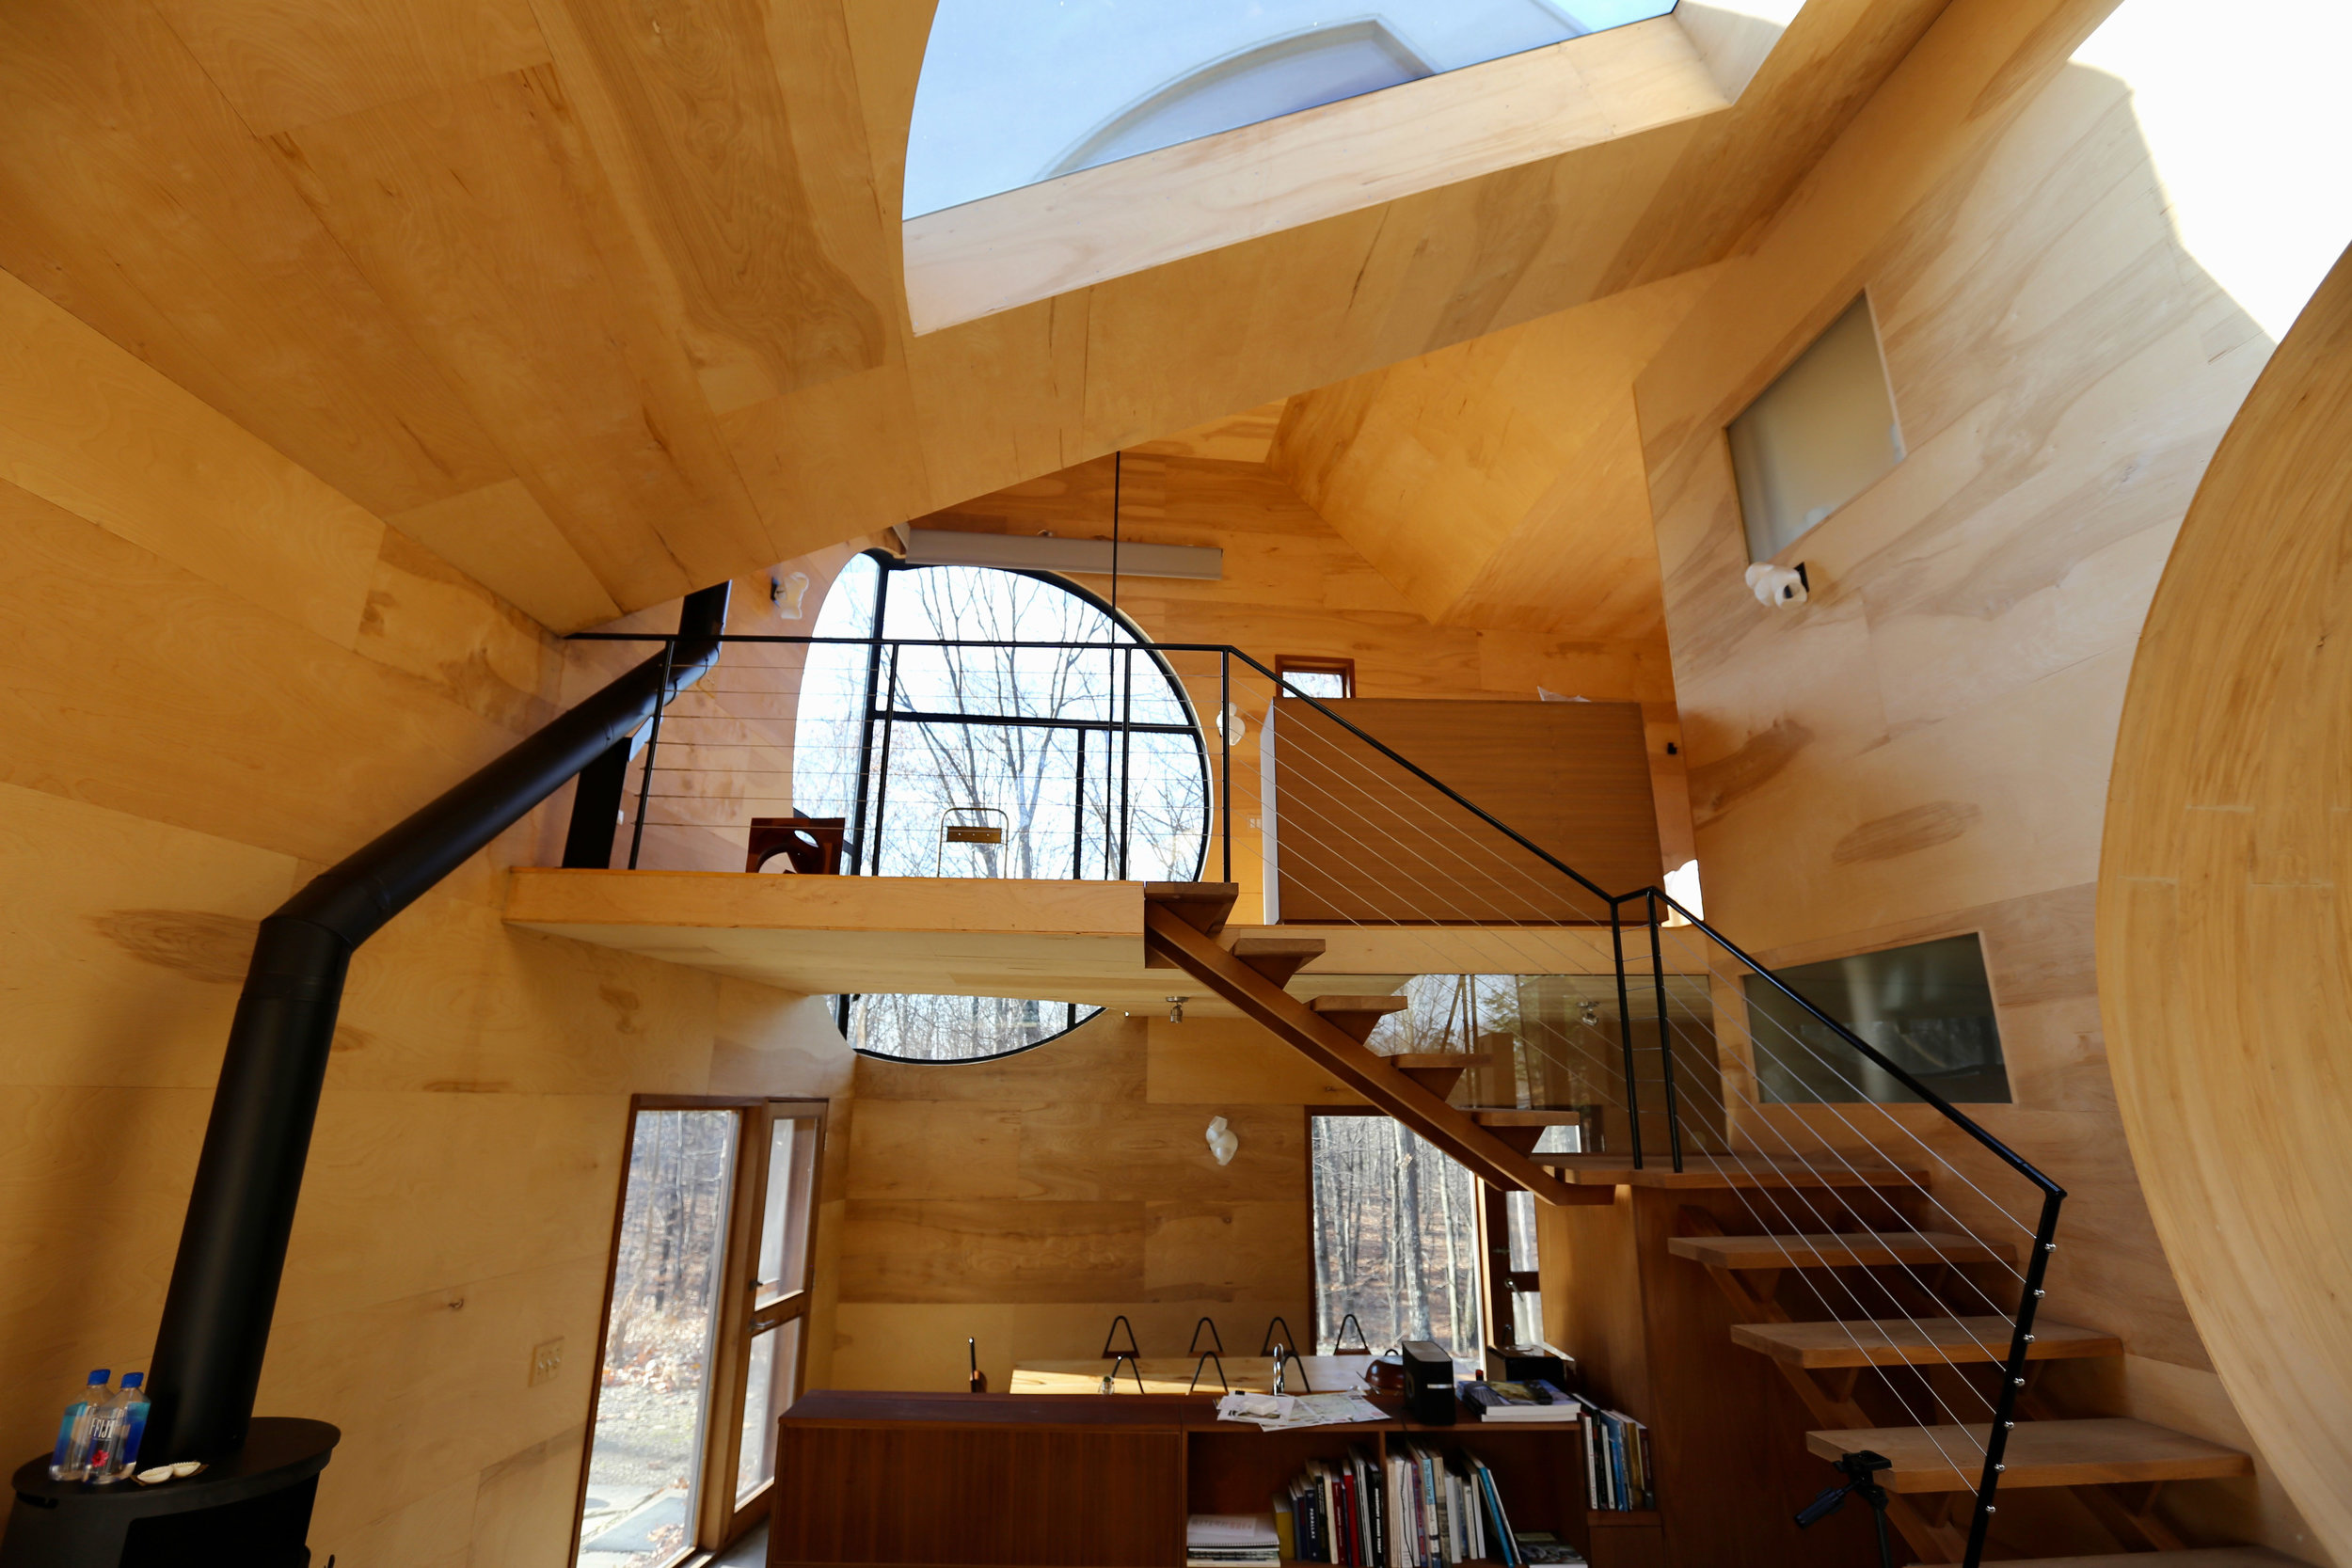 steven holl architectural project.jpg